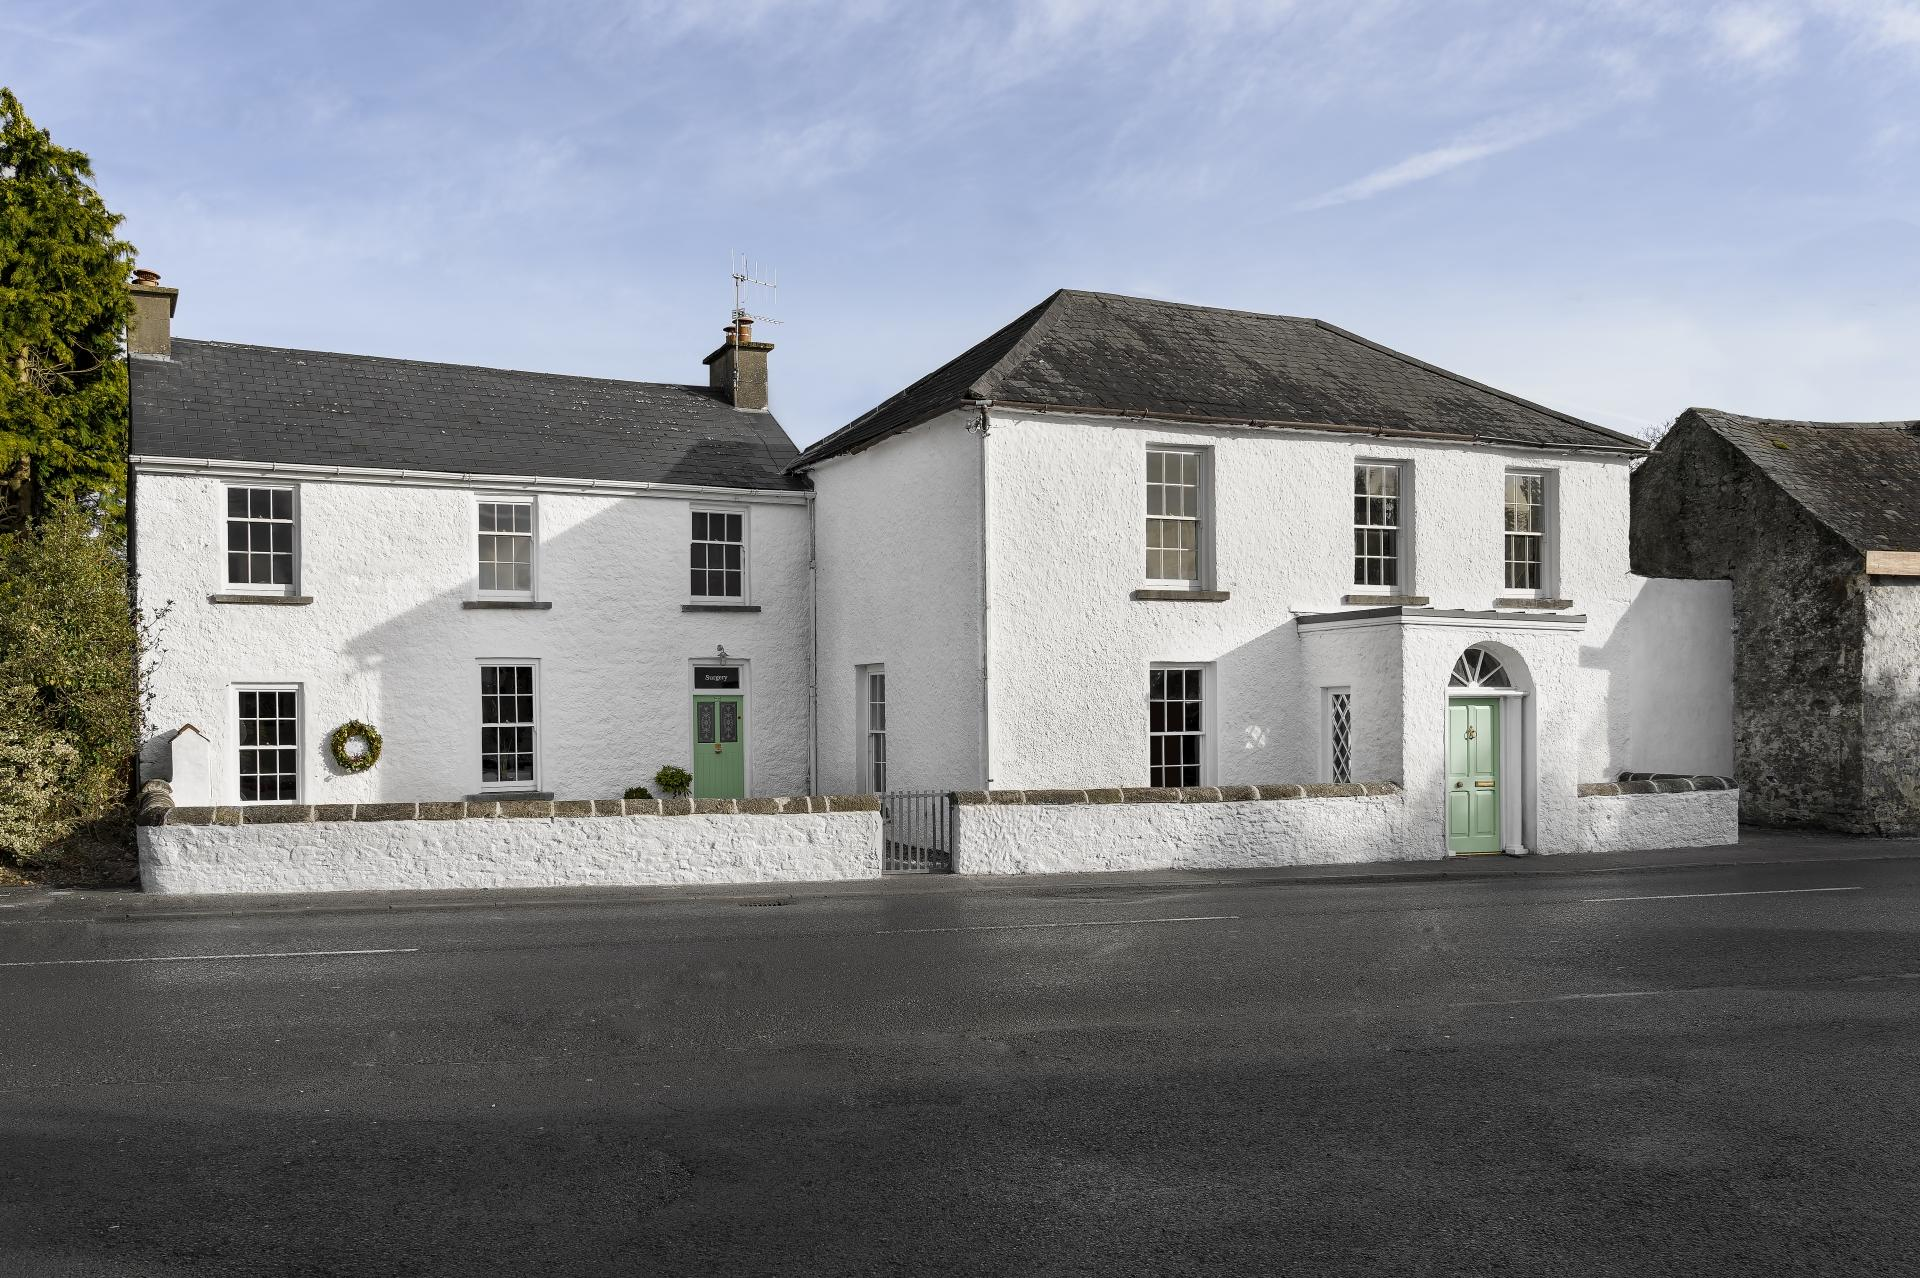 Carrick-on-Suir, Tipperary Property Price Register sold prices